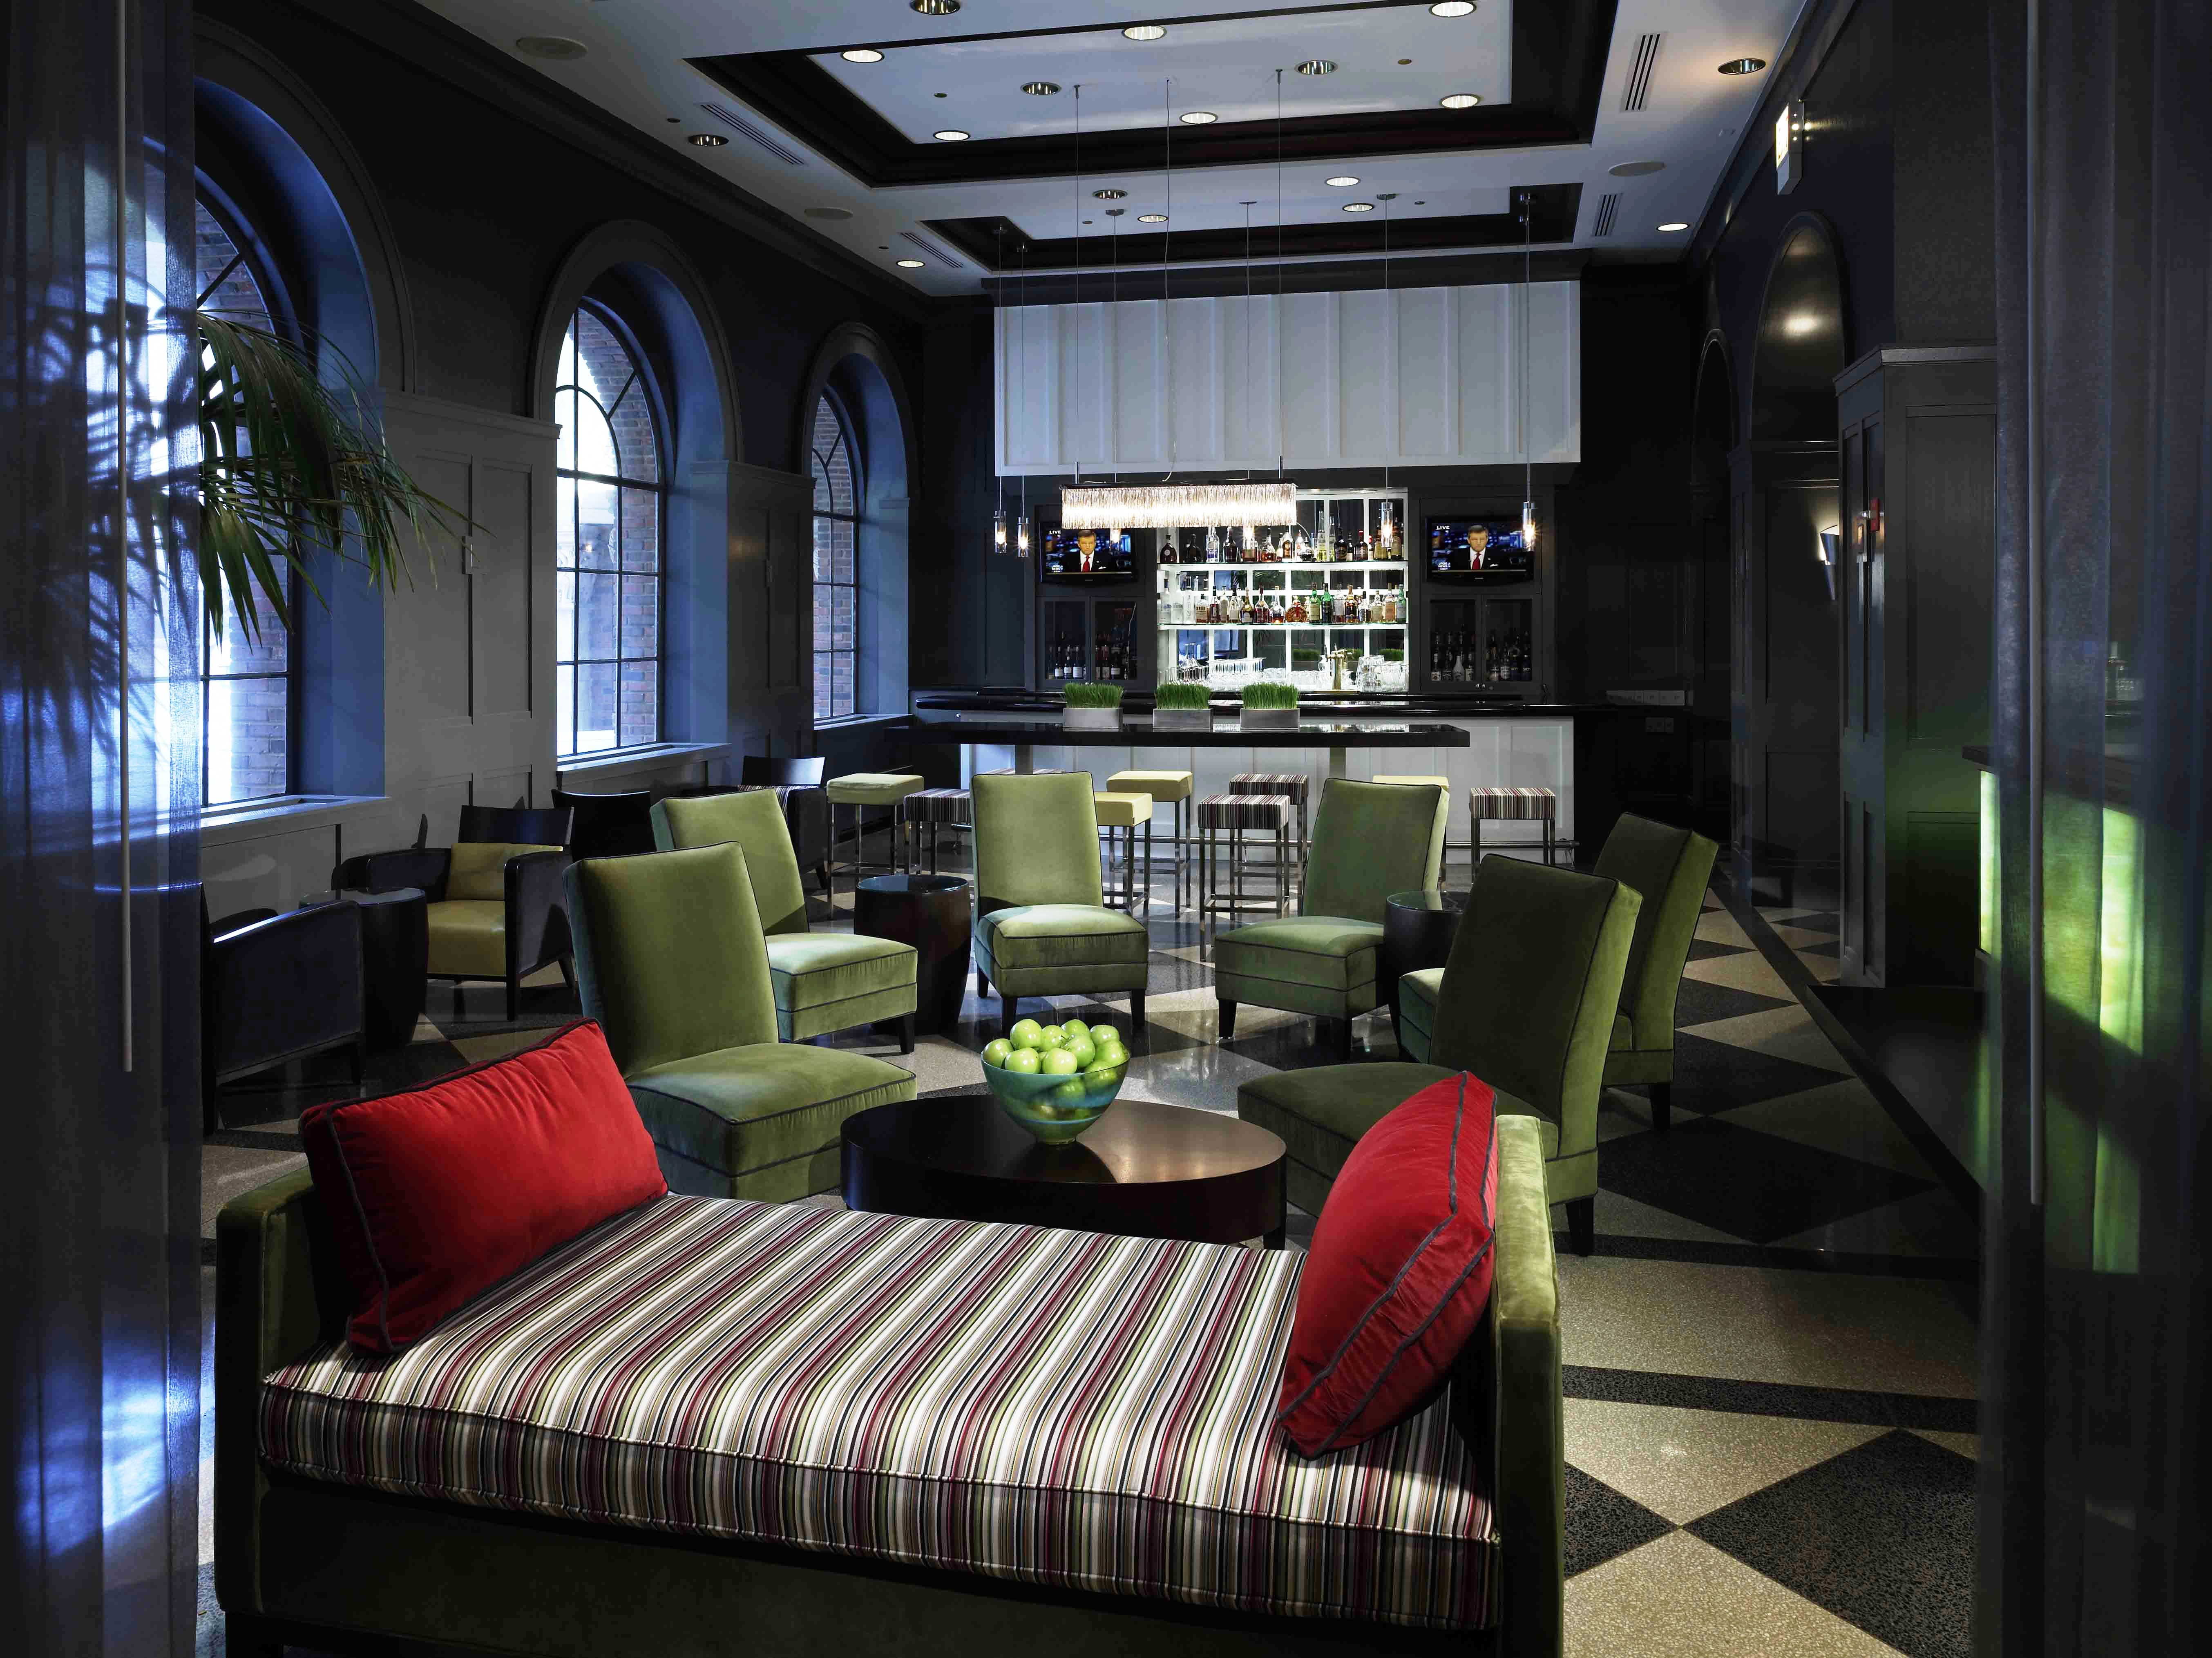 The allerton hotel chicago recieves the most nominations for M design hotel